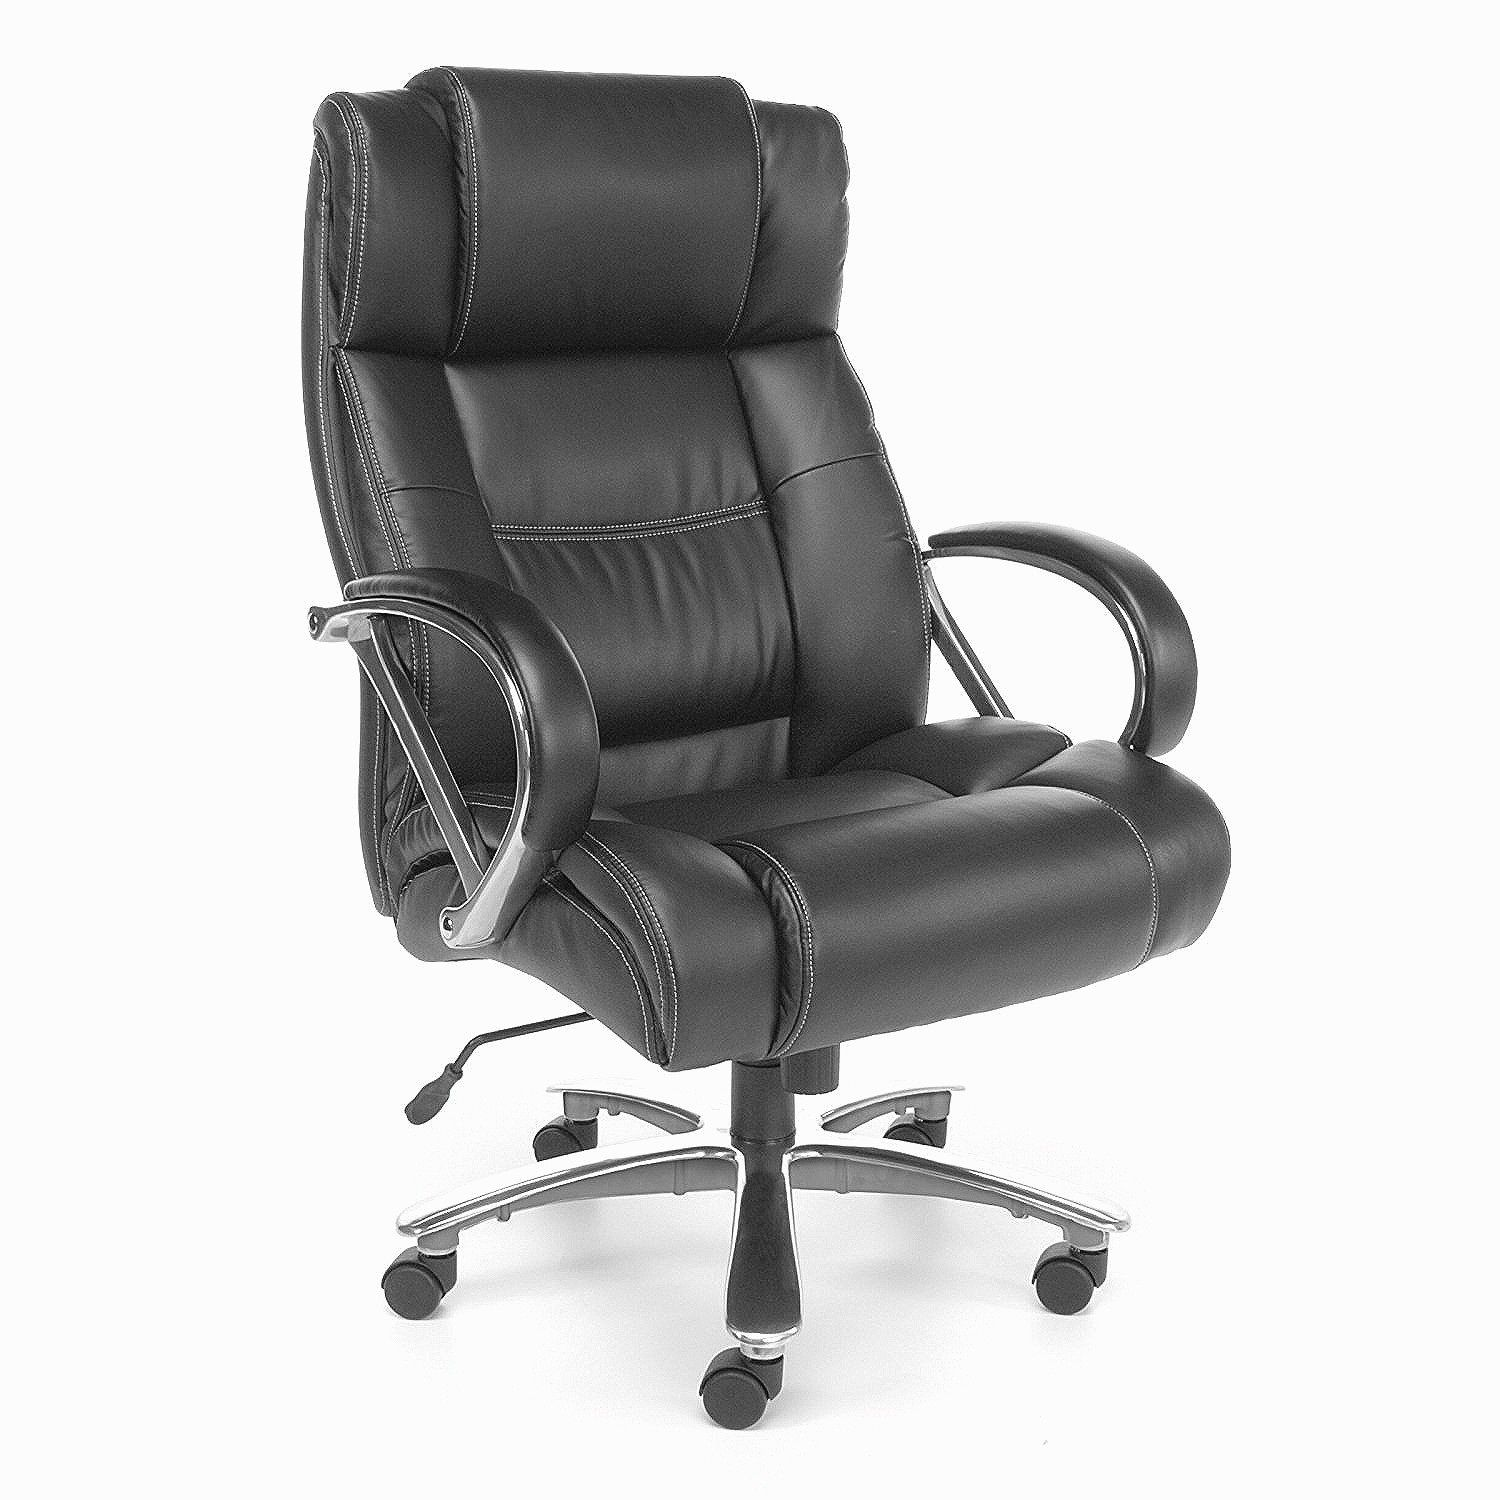 Office Chair For Large Person Real Wood Home Furniture Check More At Http